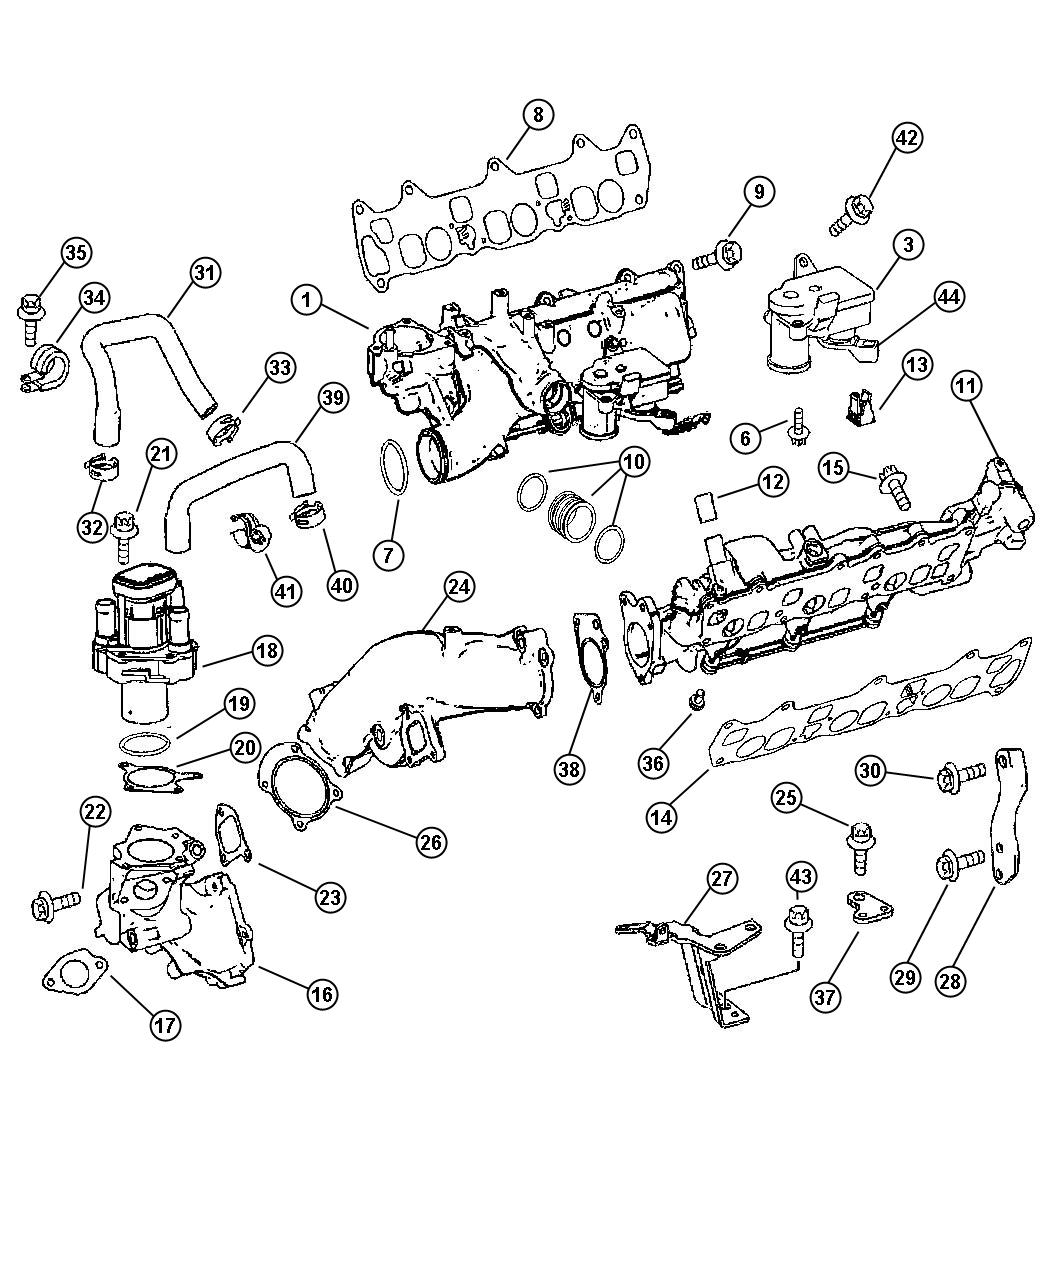 Sprinter Fuel Line Diagram Trusted Wiring 94 Mustang Filter Location 1990 5 0 Jeep System 1993